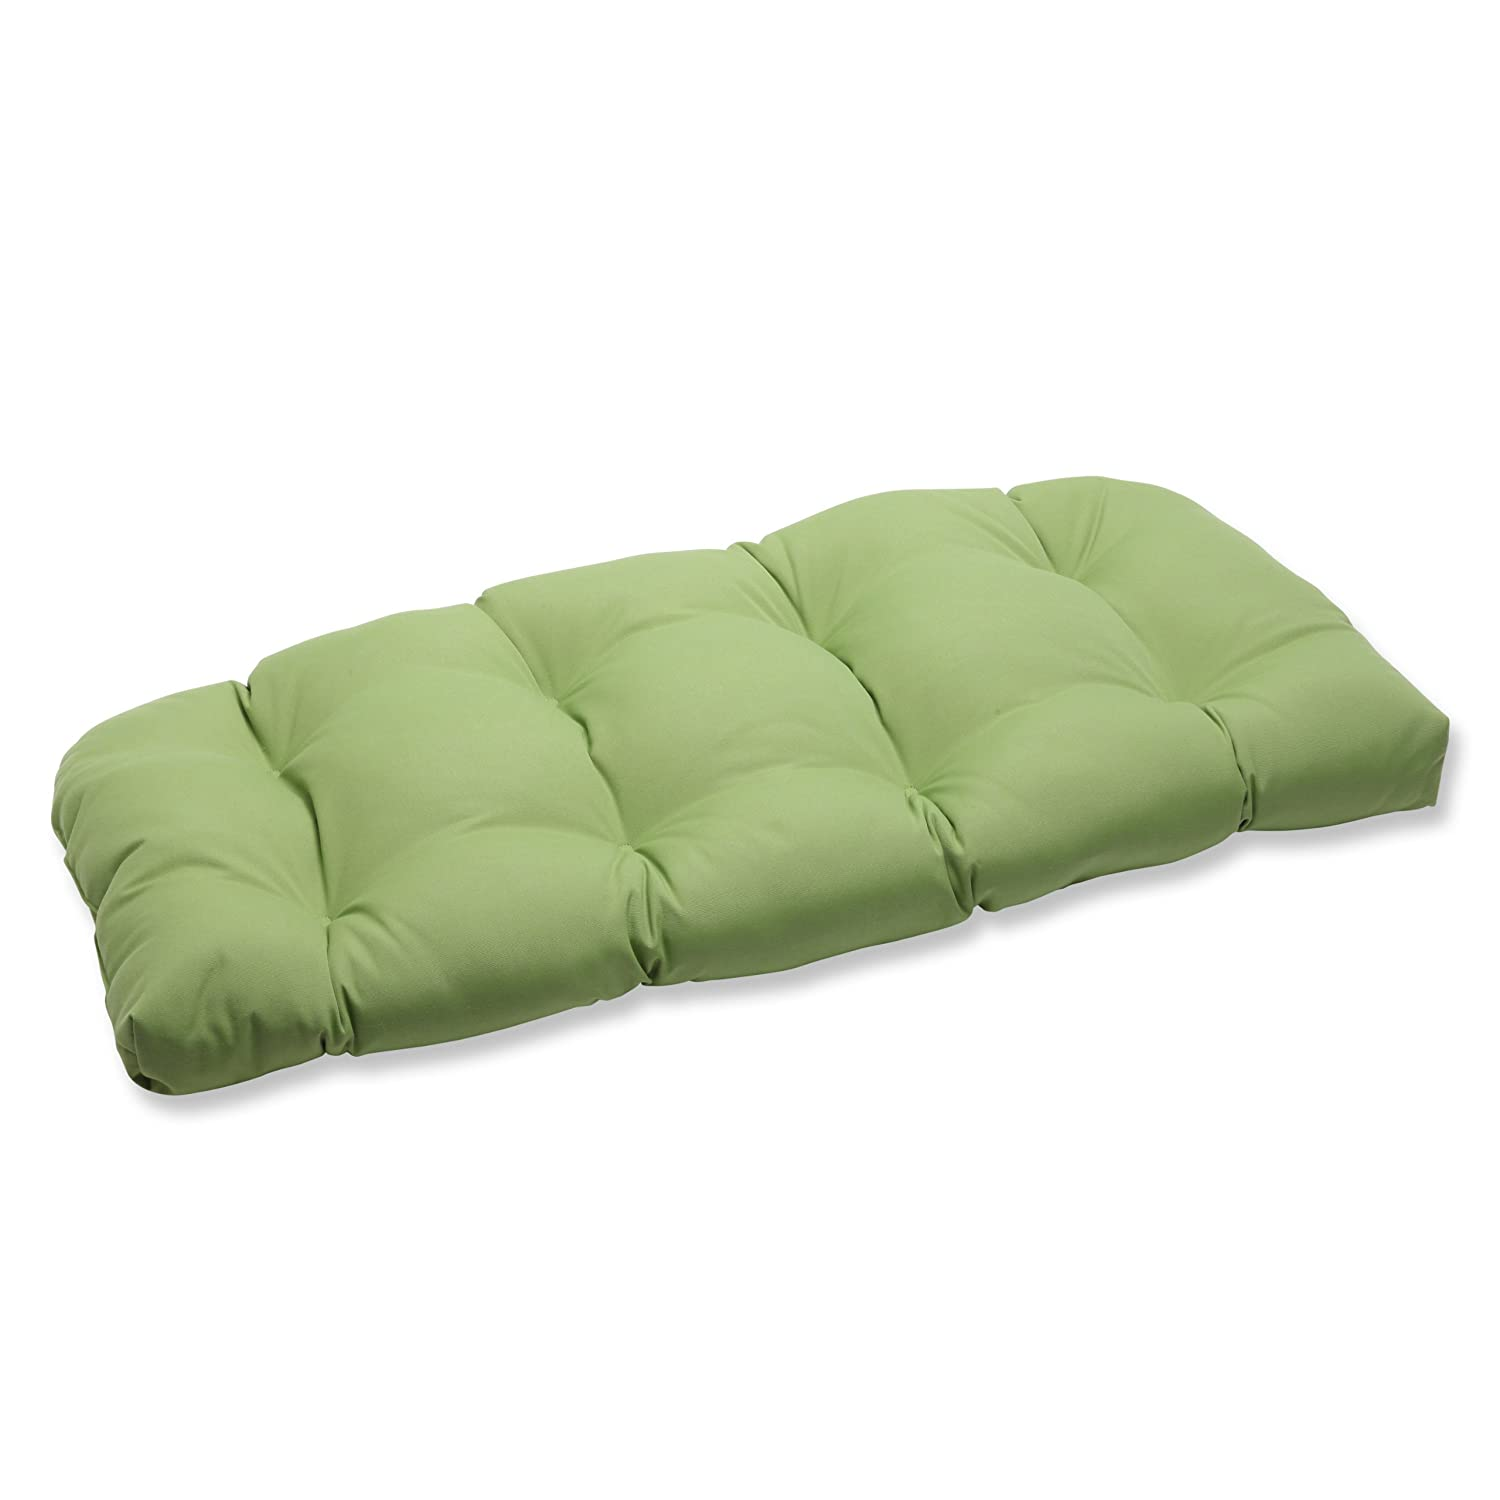 Pillow Perfect Indoor Outdoor Wicker Loveseat Cushion with Sunbrella Canvas Ginkgo Fabric, 44 in. L X 19 in. W X 5 in. D